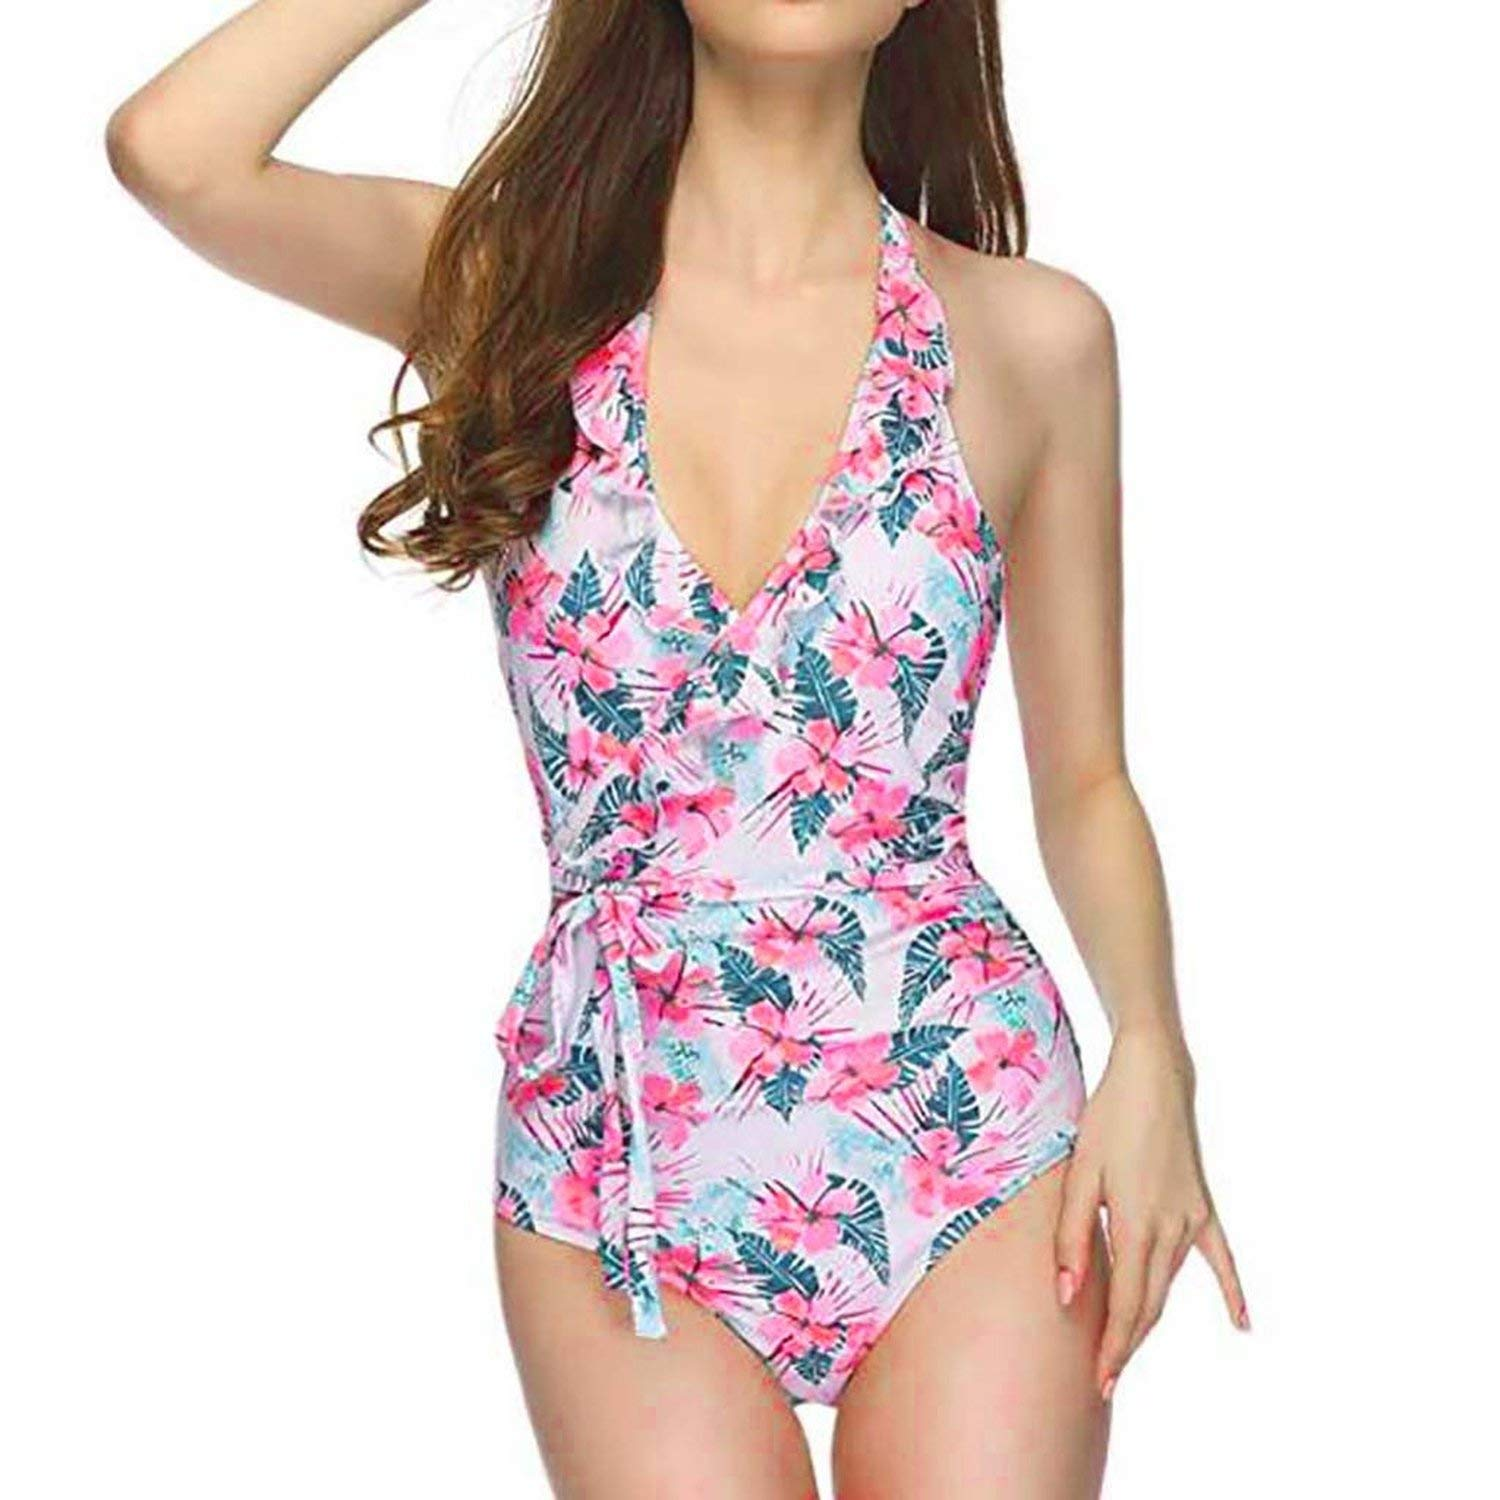 Each-Place Sexy Swimsuit for Women Swimwear Bodysuit Bandage Floral Print Swimsuit Female Bathing Suits